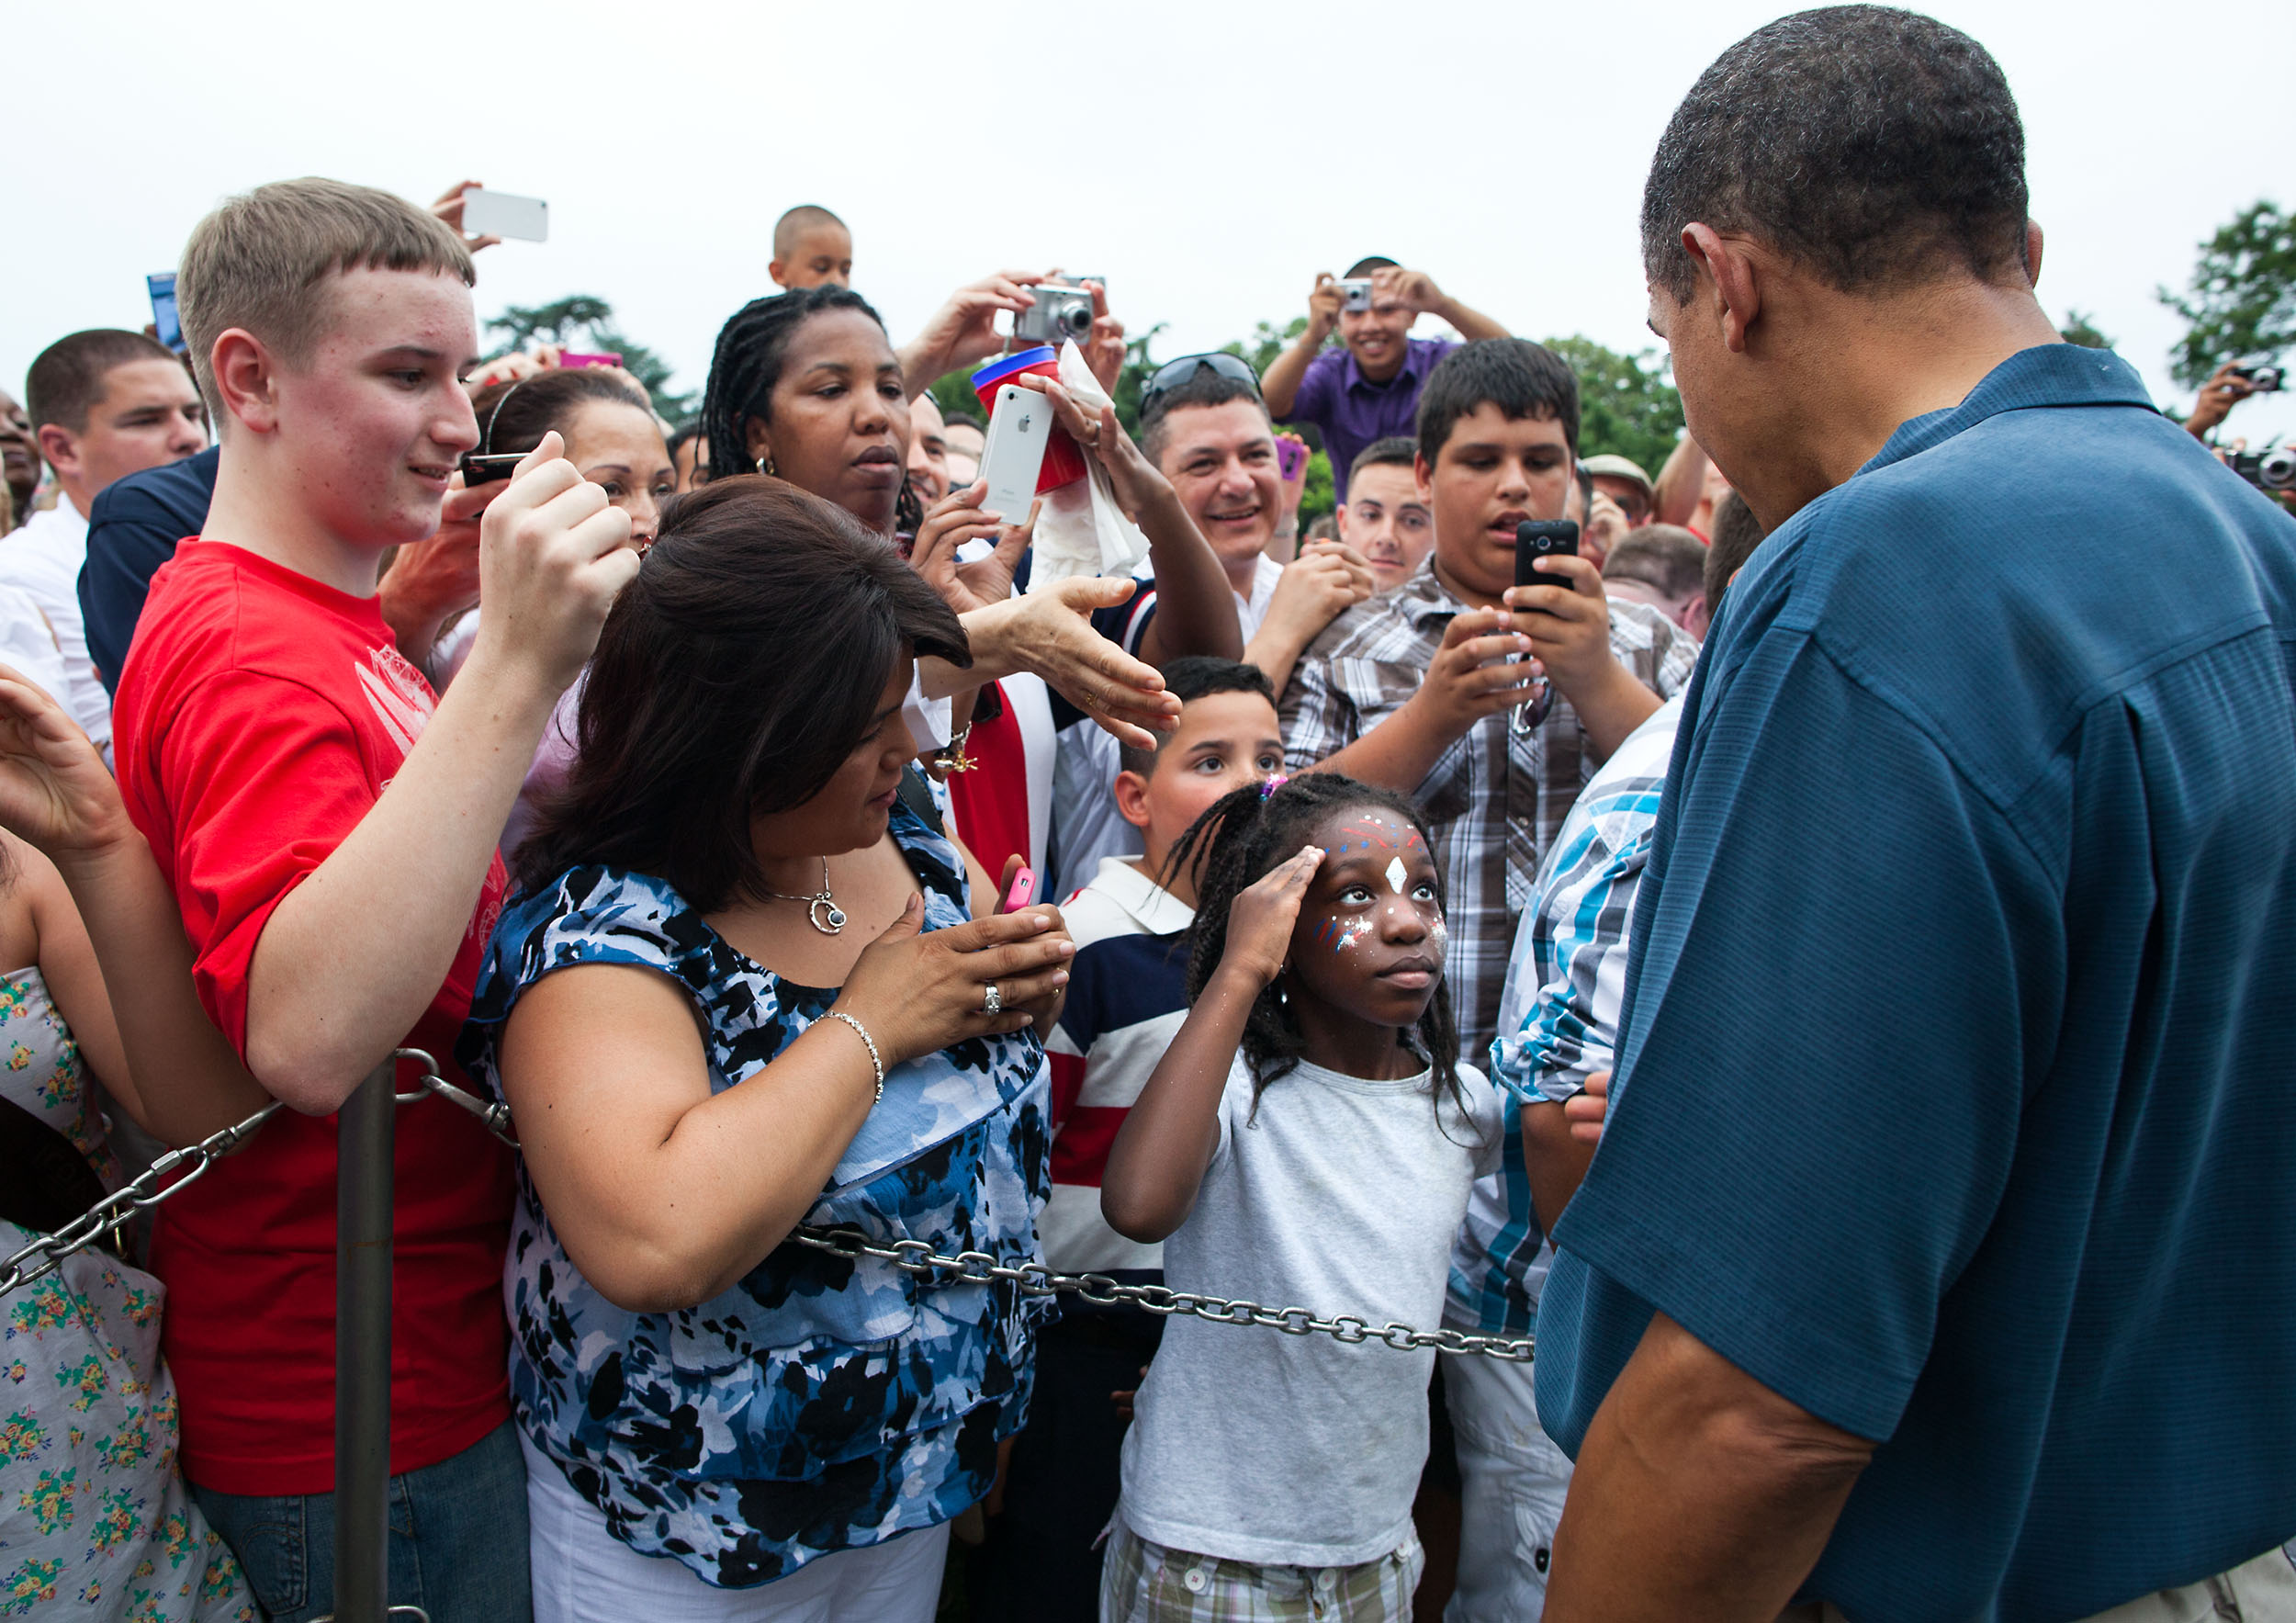 """July 4, 2011                               Pete Souza: """"I was lucky to make this frame of a young girl saluting President Obama as he shook hands along a rope line with members of the military and their families before the fireworks.""""                               President Barack Obama and First Lady Michelle Obama welcome military families attending the Fourth of July celebration on the South Lawn of the White House, July 4, 2011."""